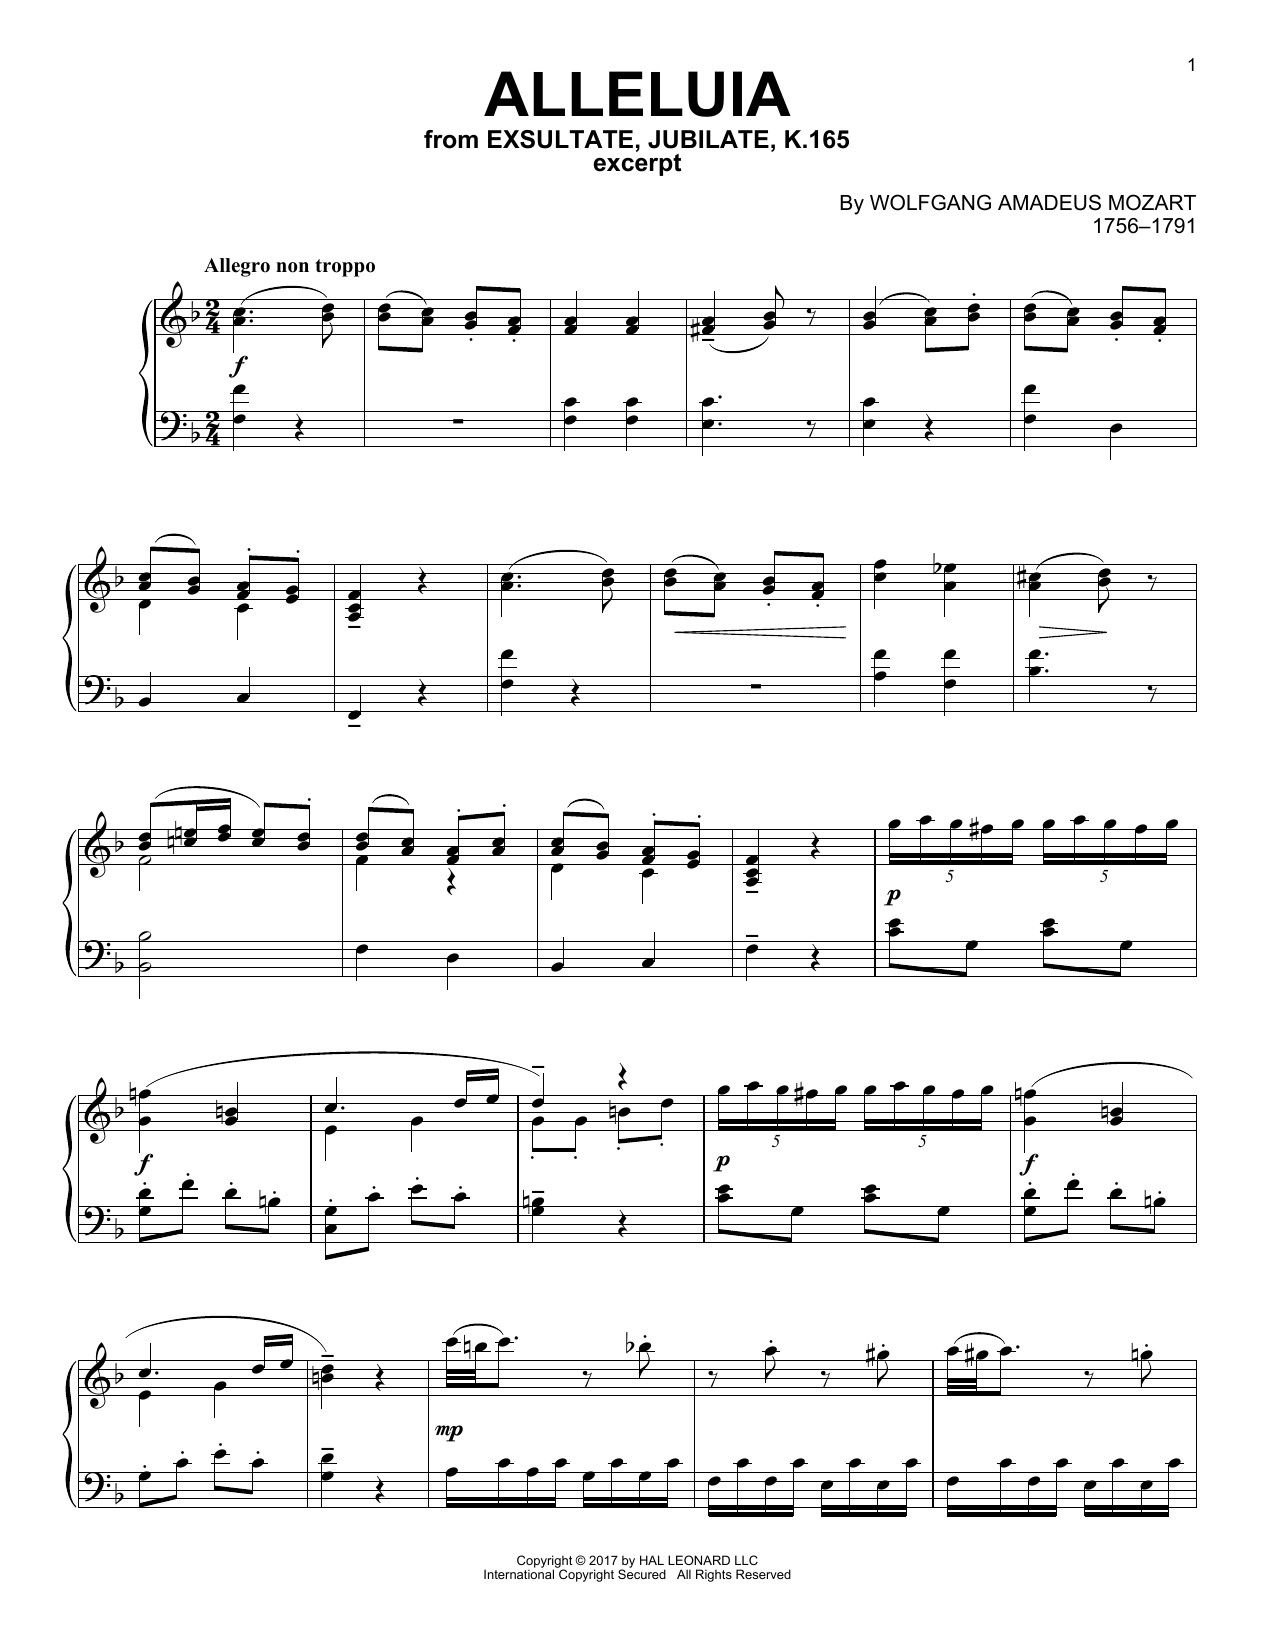 Wolfgang Amadeus Mozart Alleluia sheet music notes and chords. Download Printable PDF.